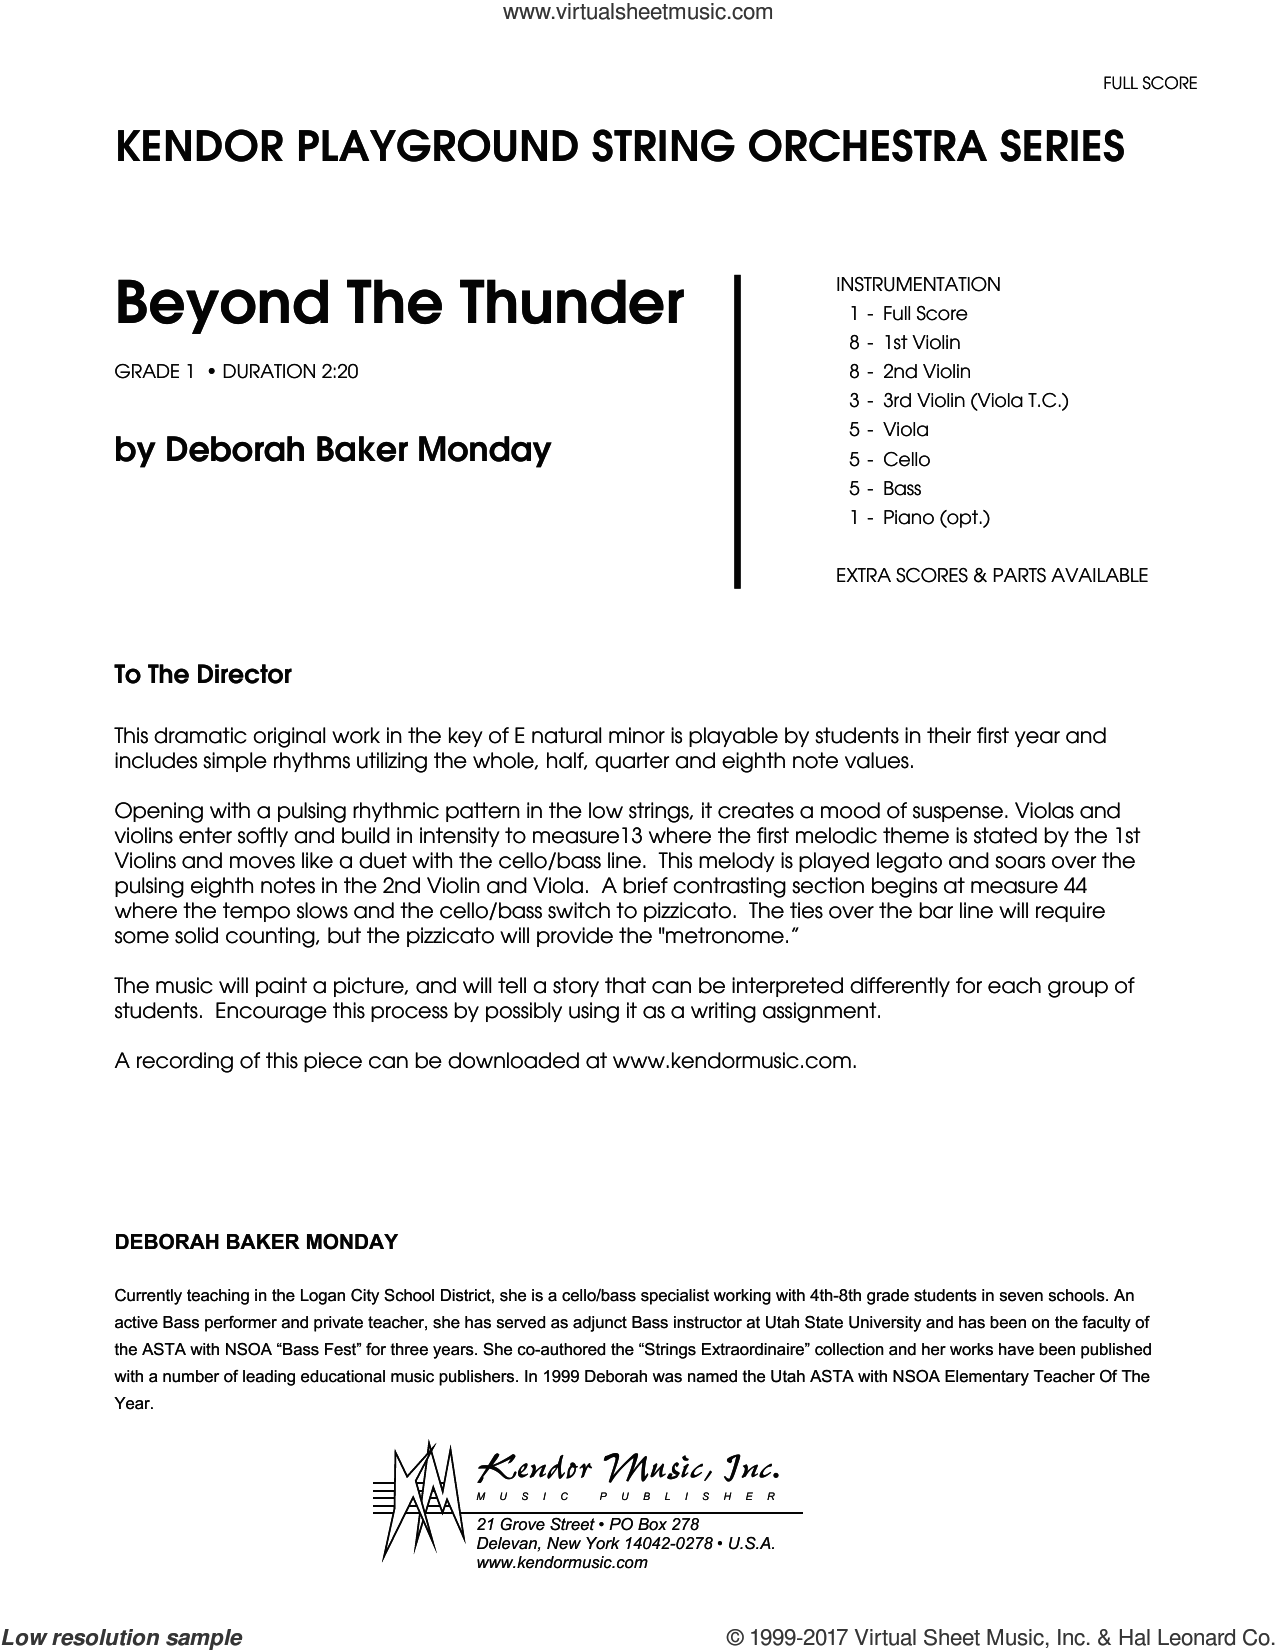 Beyond The Thunder (COMPLETE) sheet music for orchestra by Deborah Baker Monday, intermediate skill level